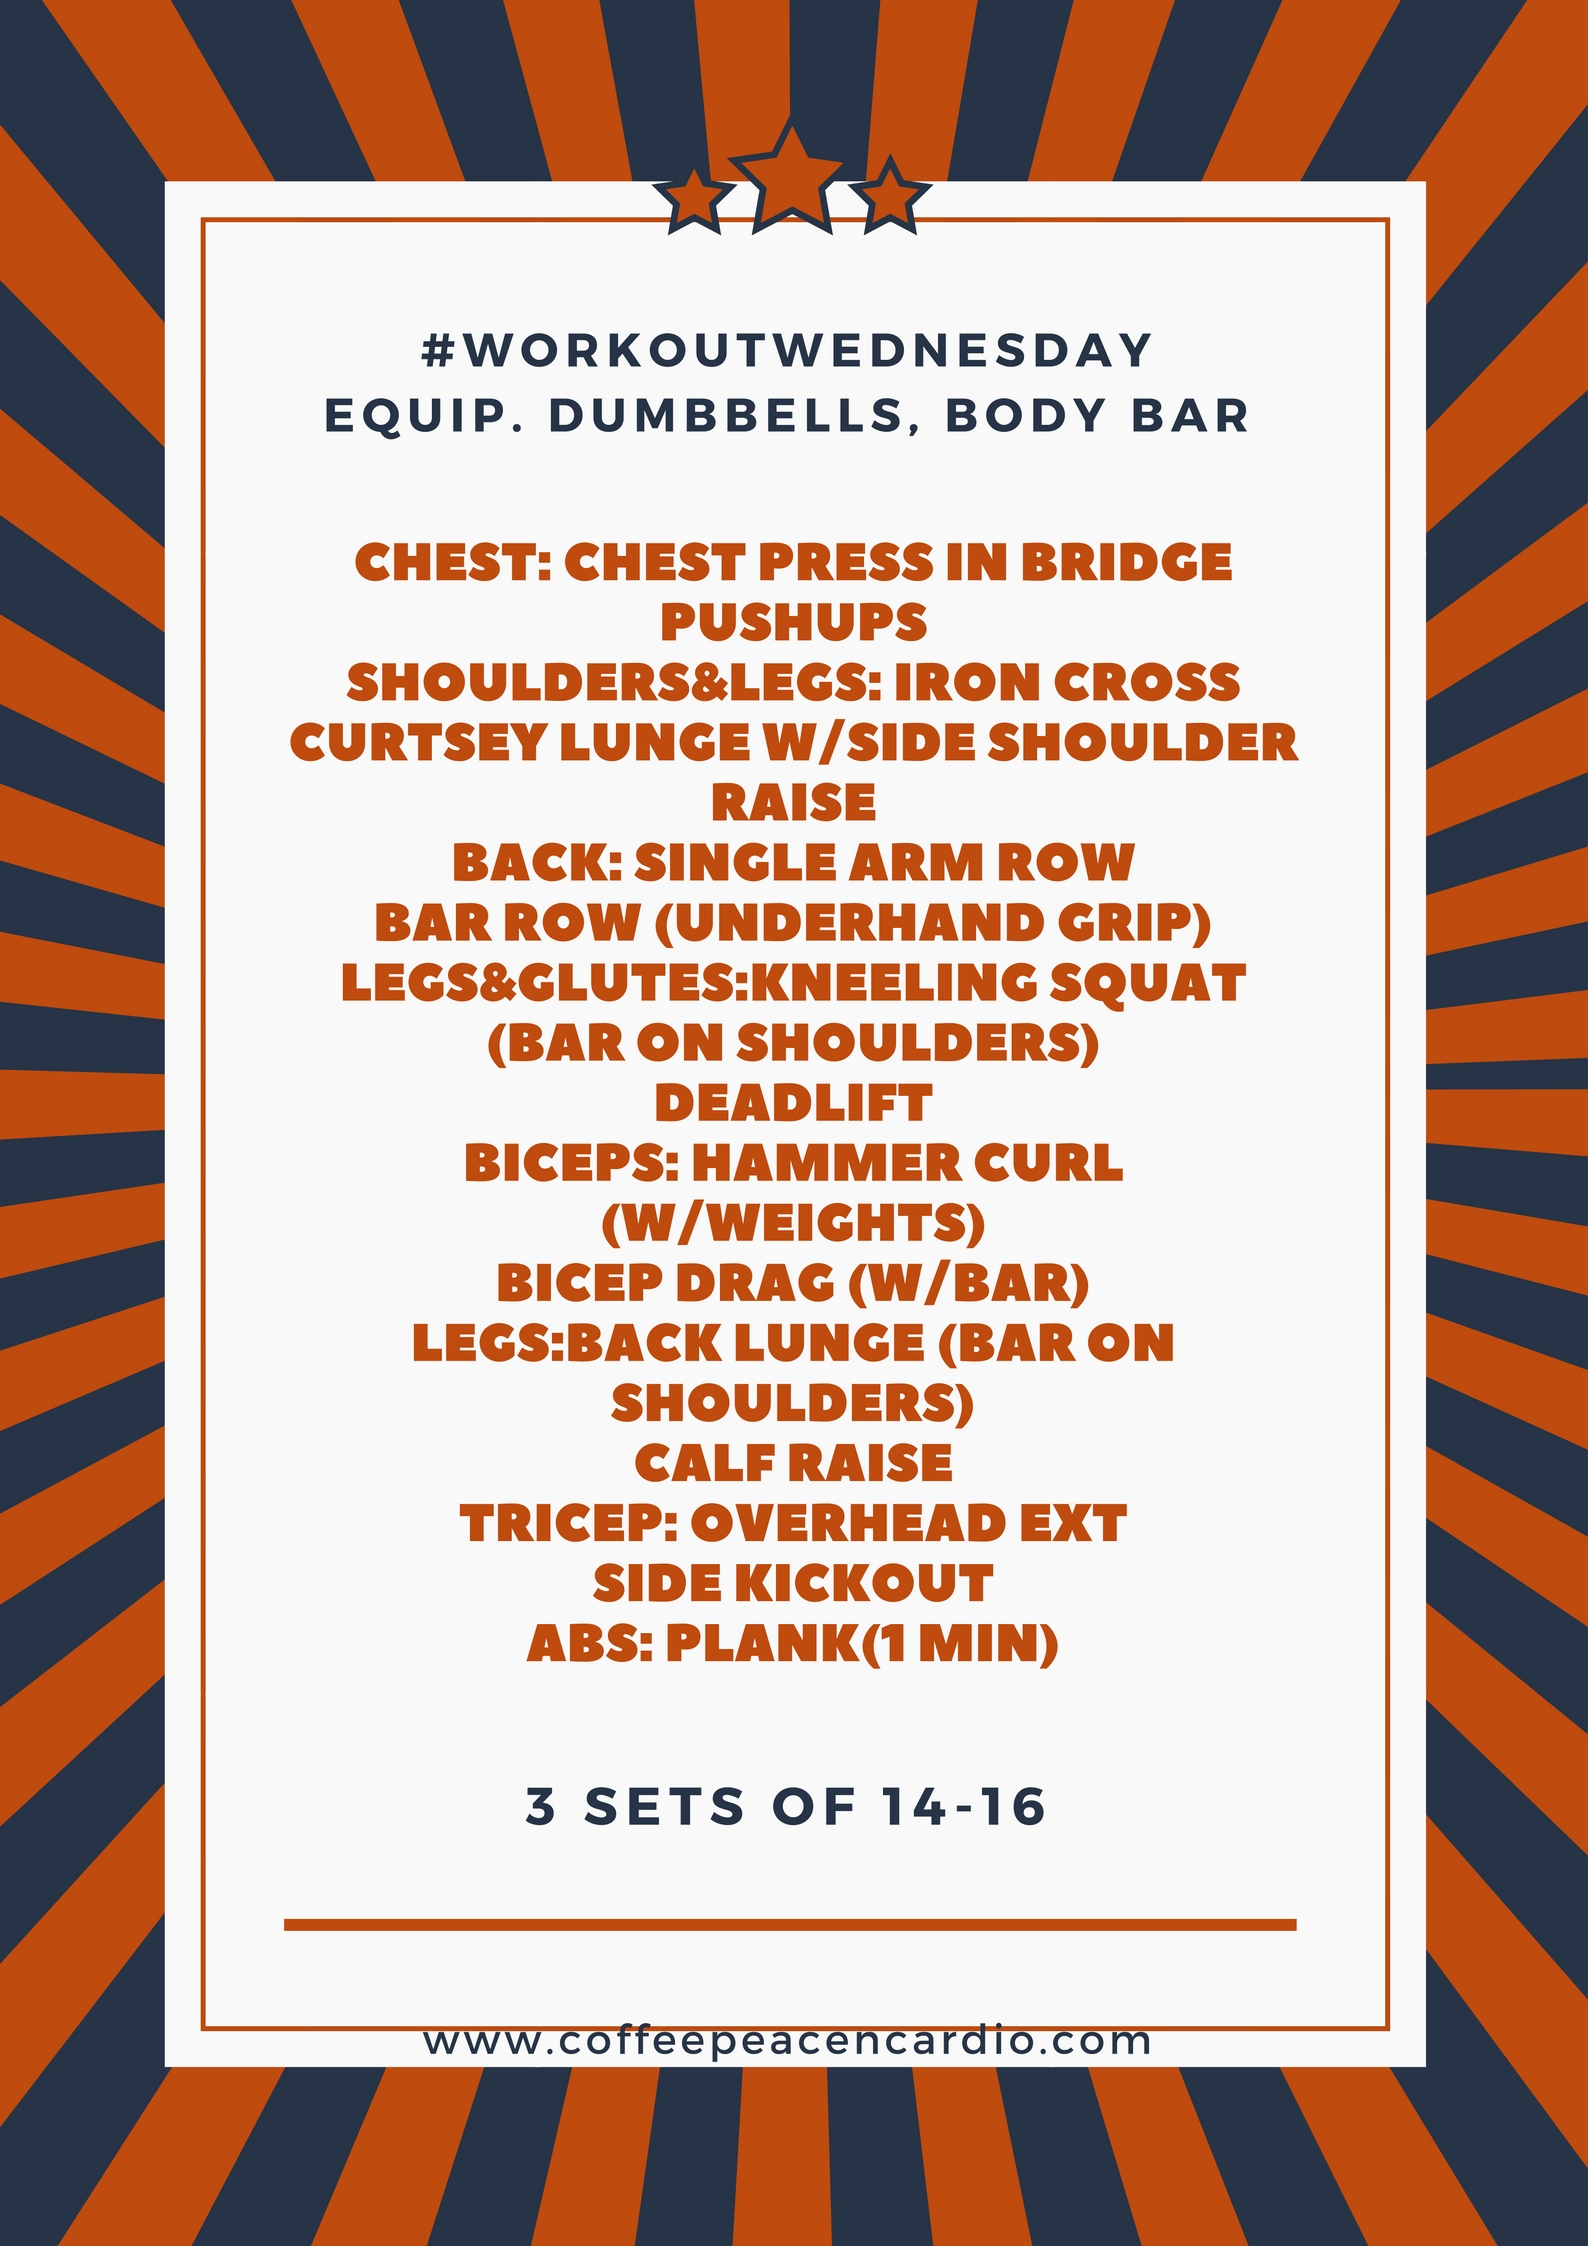 _workoutwednesdayEquip. Dumbbells, Body Bar